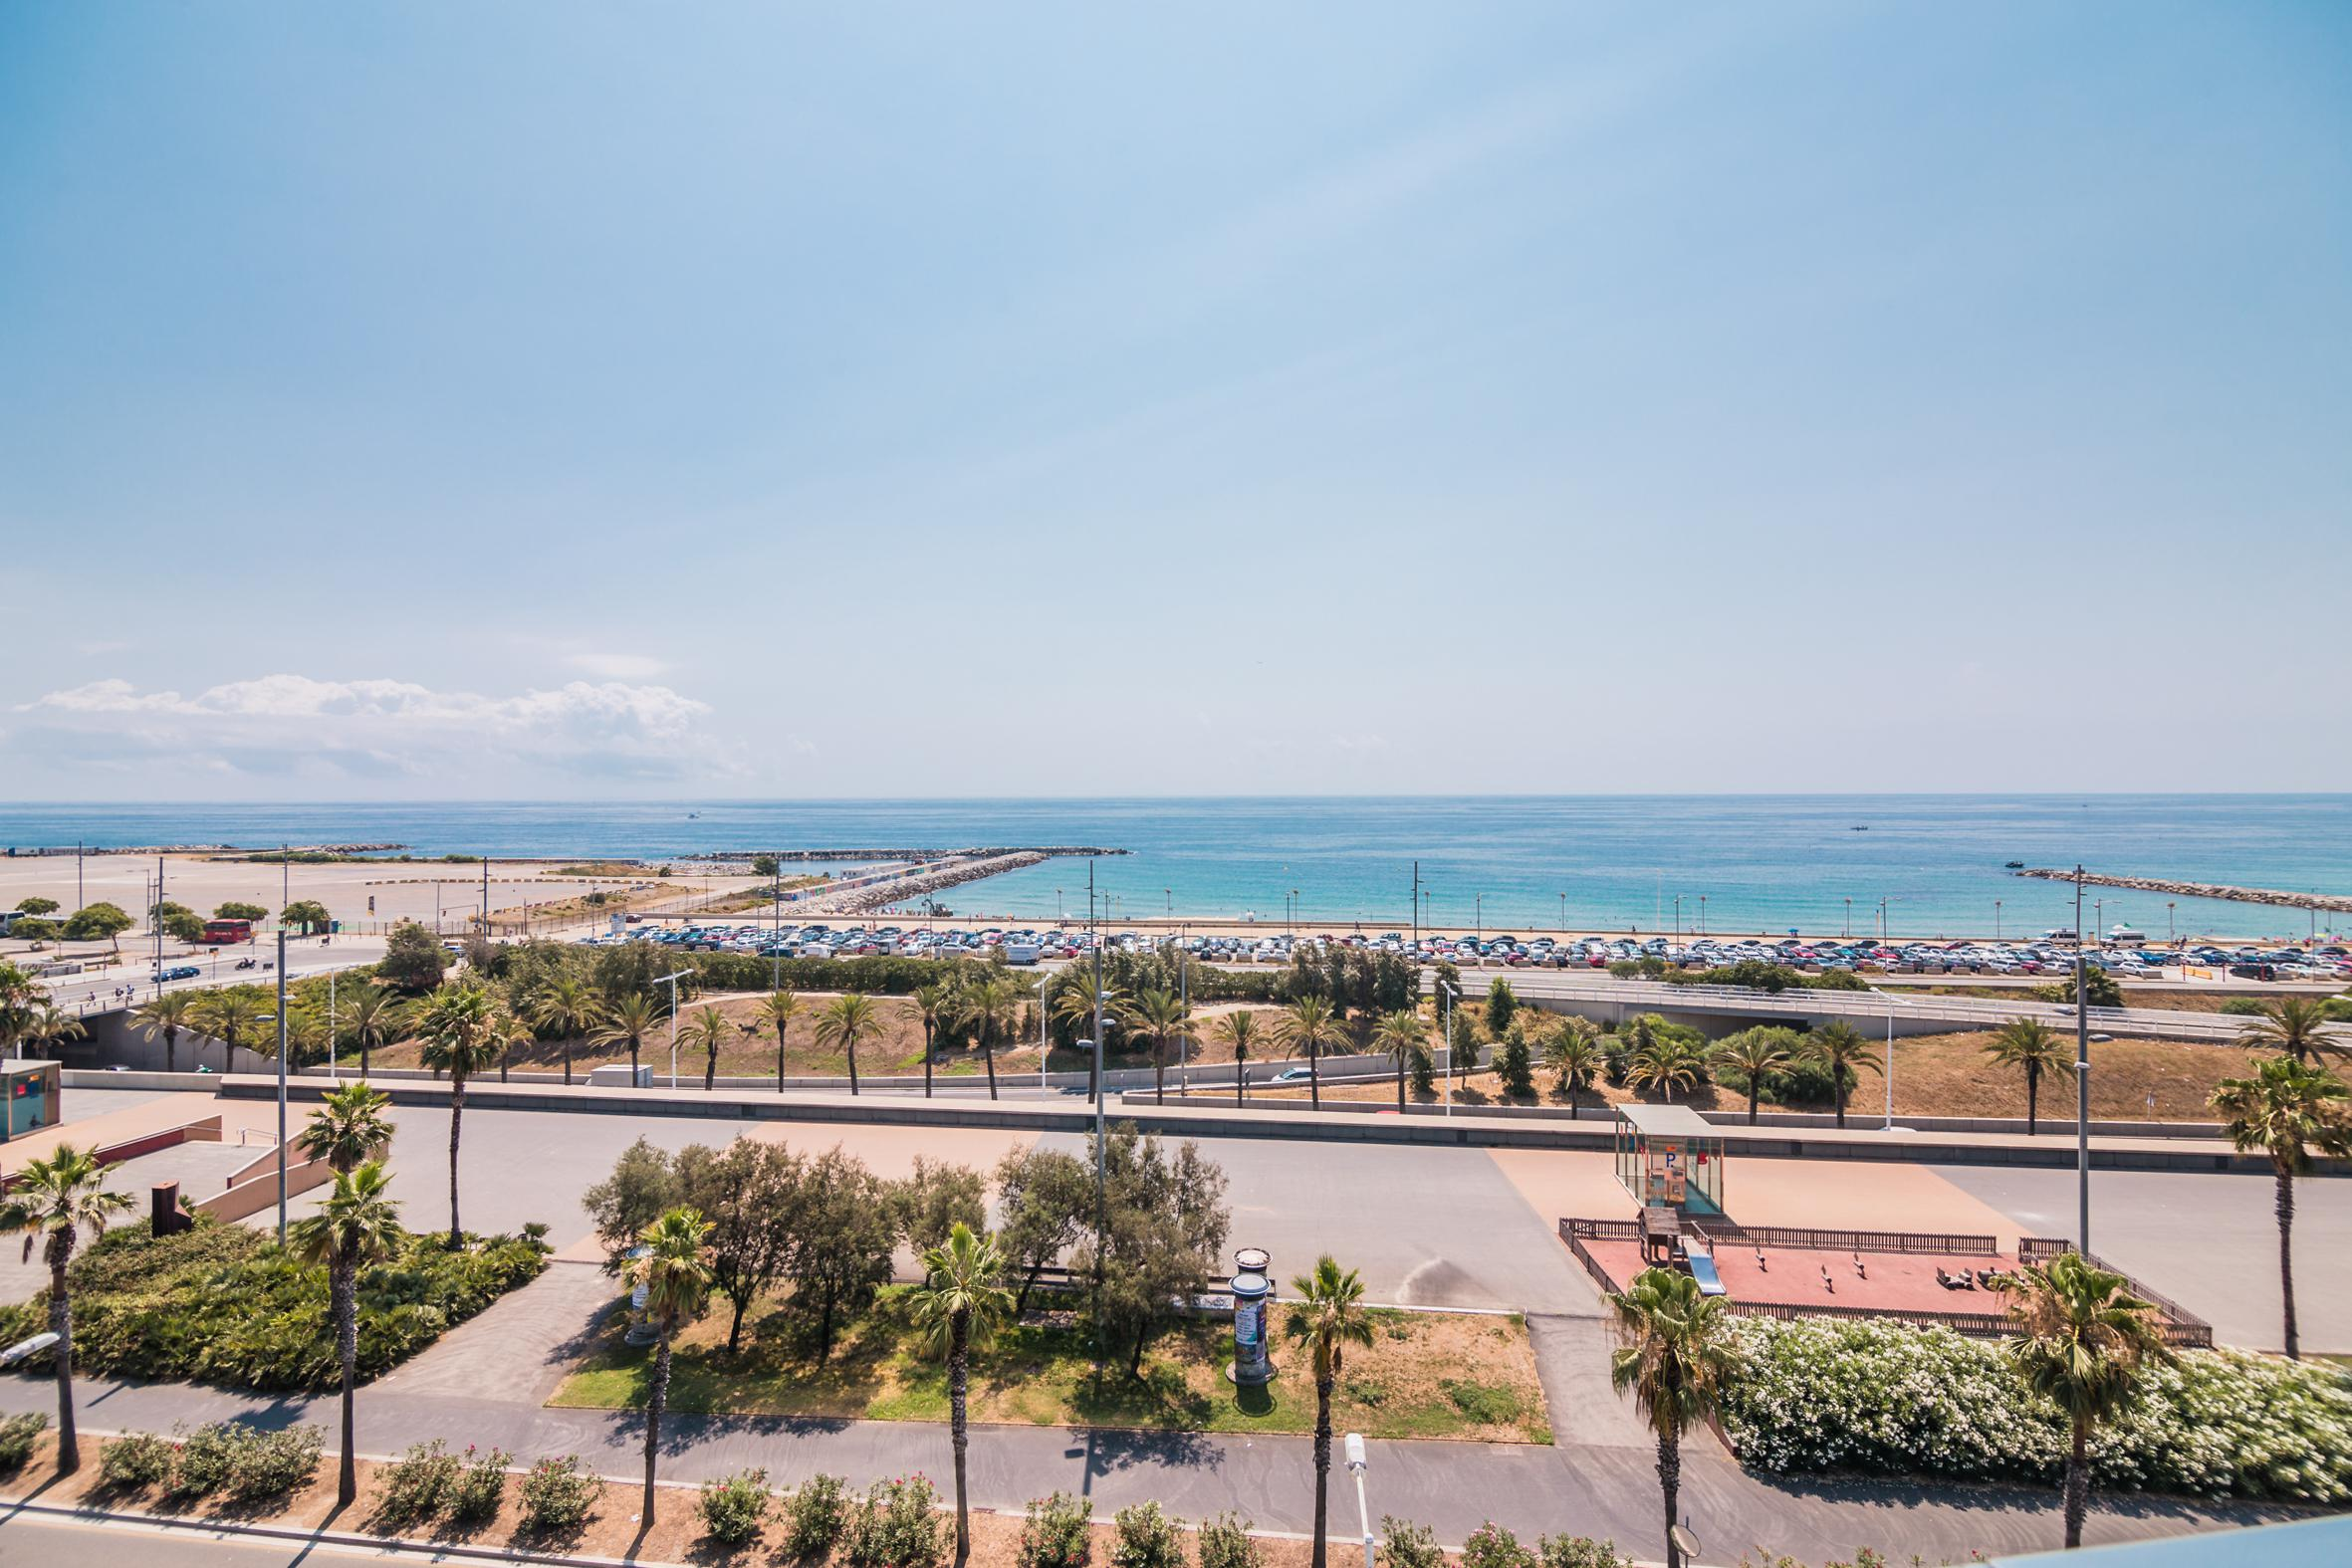 208233 Apartment for sale in Sant Martí, Diagonal Mar and Front Marítim PN 23